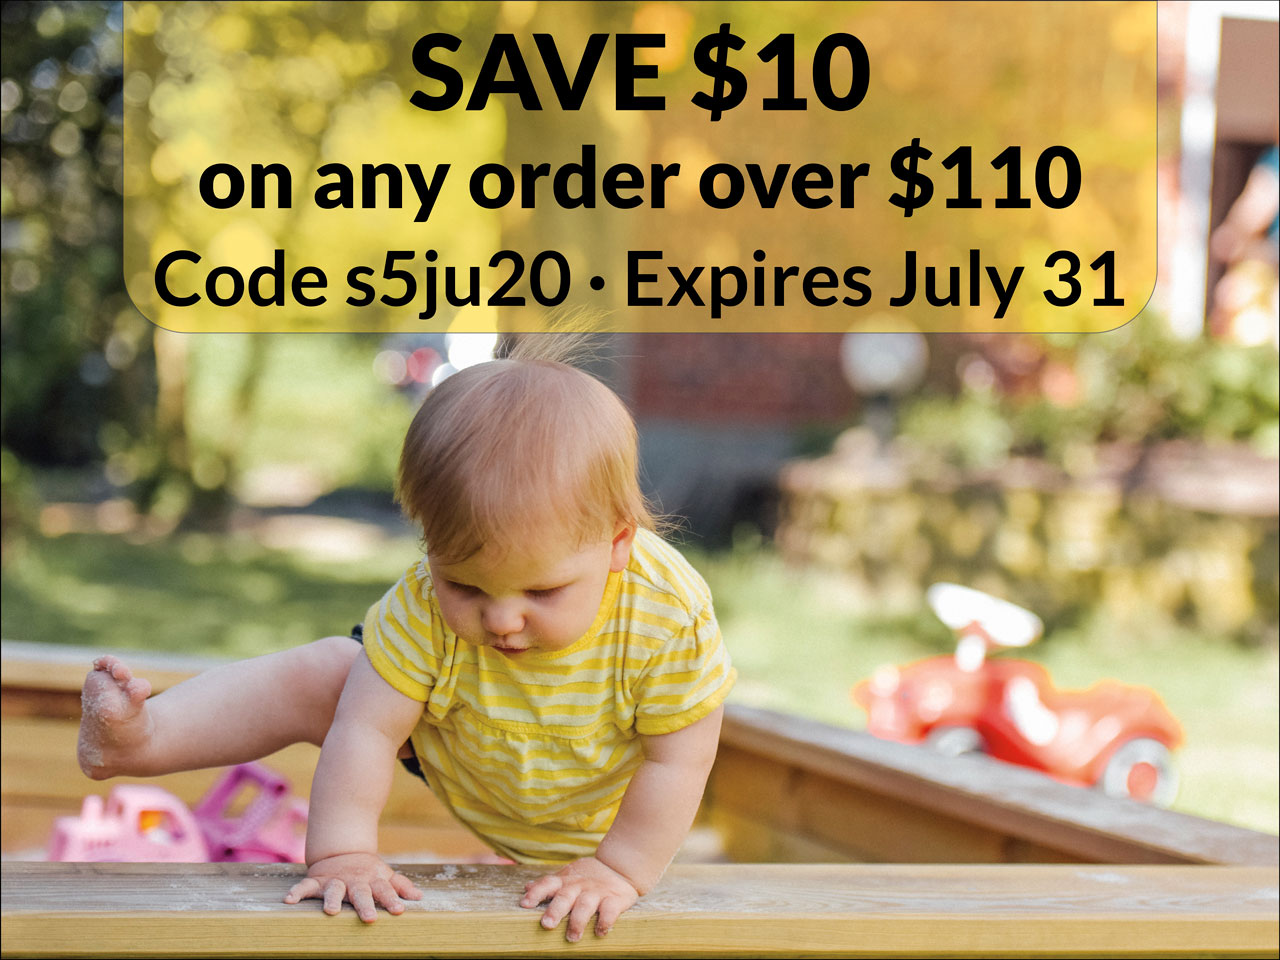 Save $10 on any order over $110